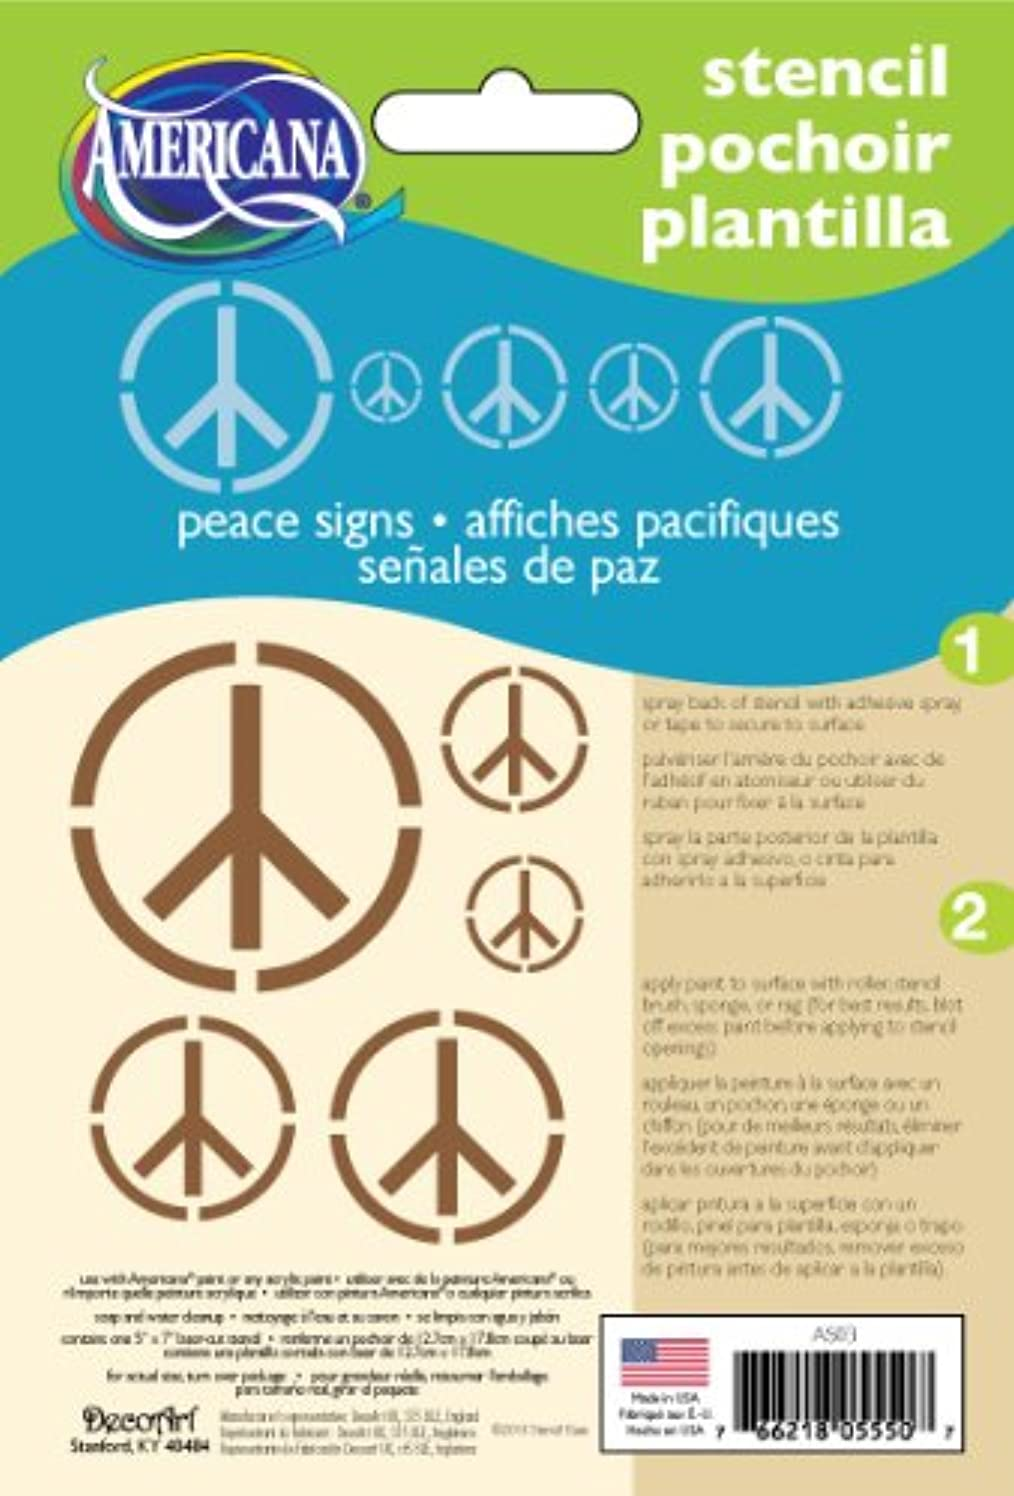 DecoArt 5-Inch-by-7-Inch Stencil Home Decor Series, Peace Signs